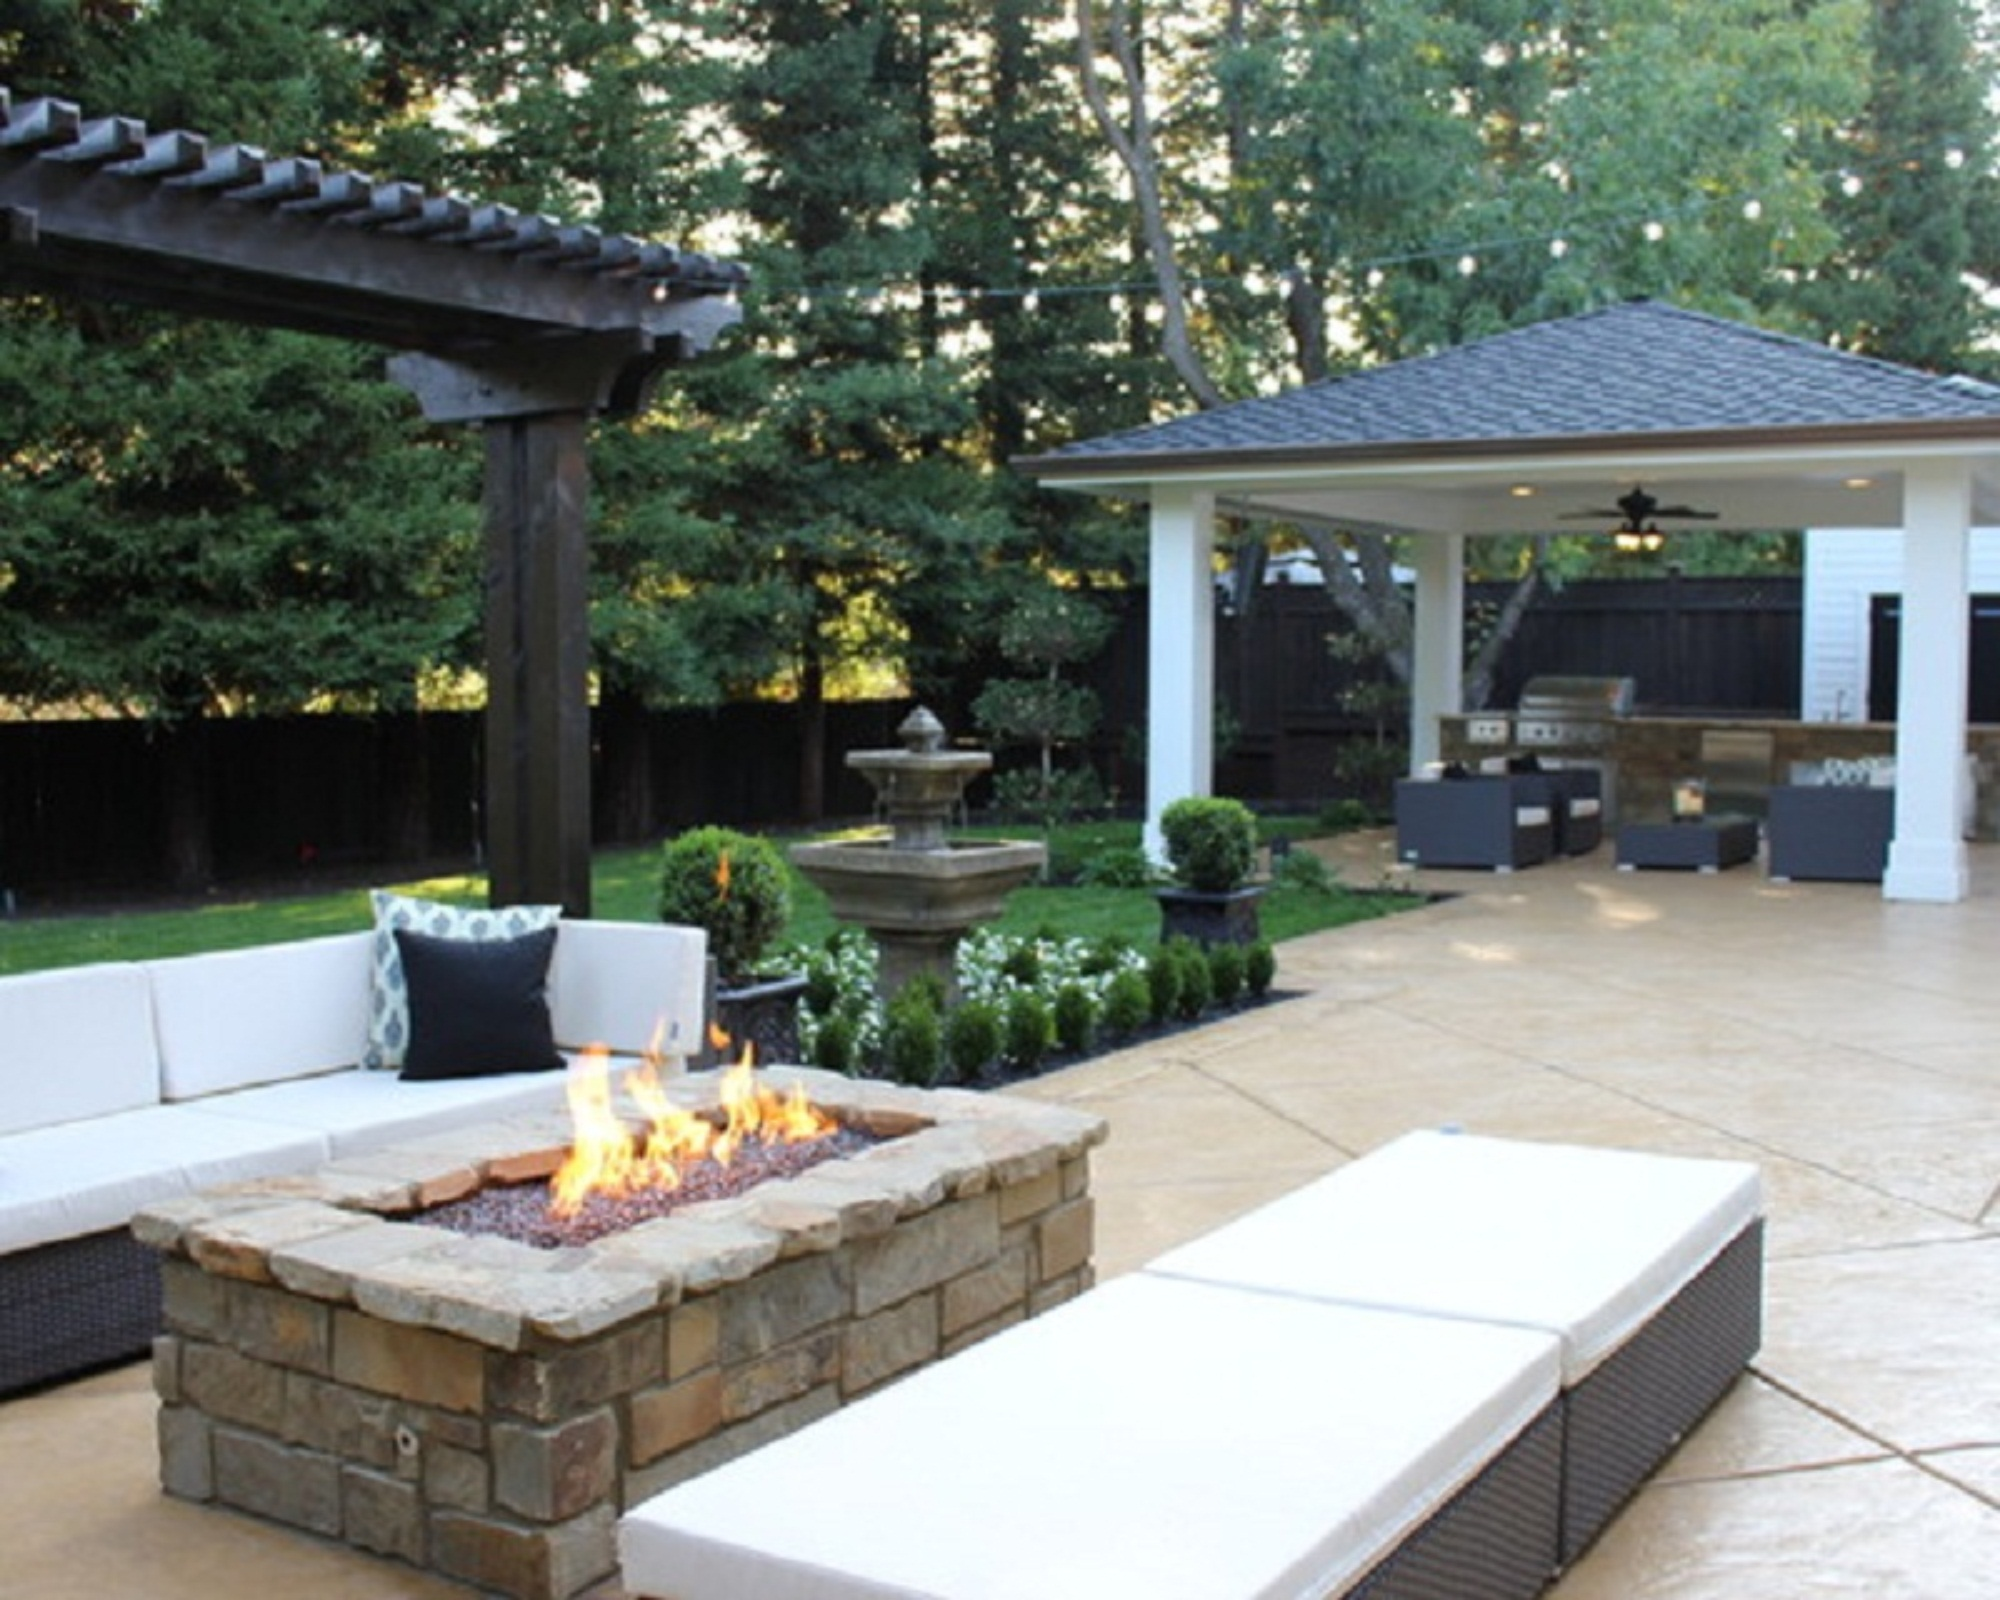 Practical Backyard Patio Ideas with Sectional Sofa and Bench Completed with Fireplace between Them